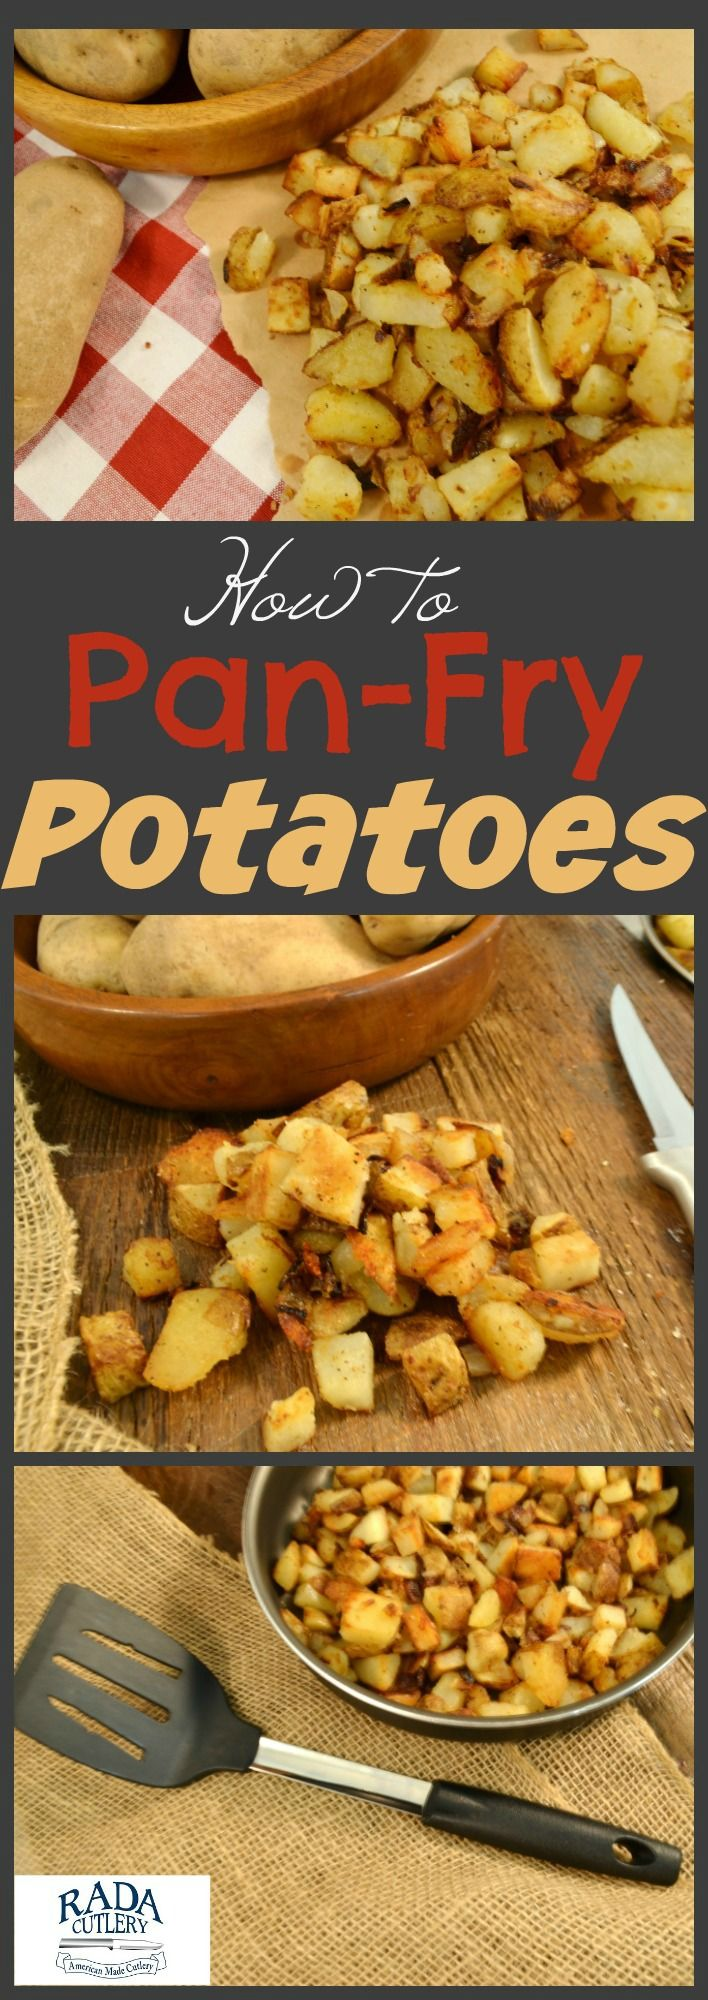 Whether you're having breakfast, lunch, or dinner, this pan-fried potatoes recipe is your ticket to a fabulous meal! With these potatoes, you have a quick and easy dish that goes great as a side or even a main course. These crispy, salty potatoes will be loved by all and only take mere moments to make! #potatoes #recipe